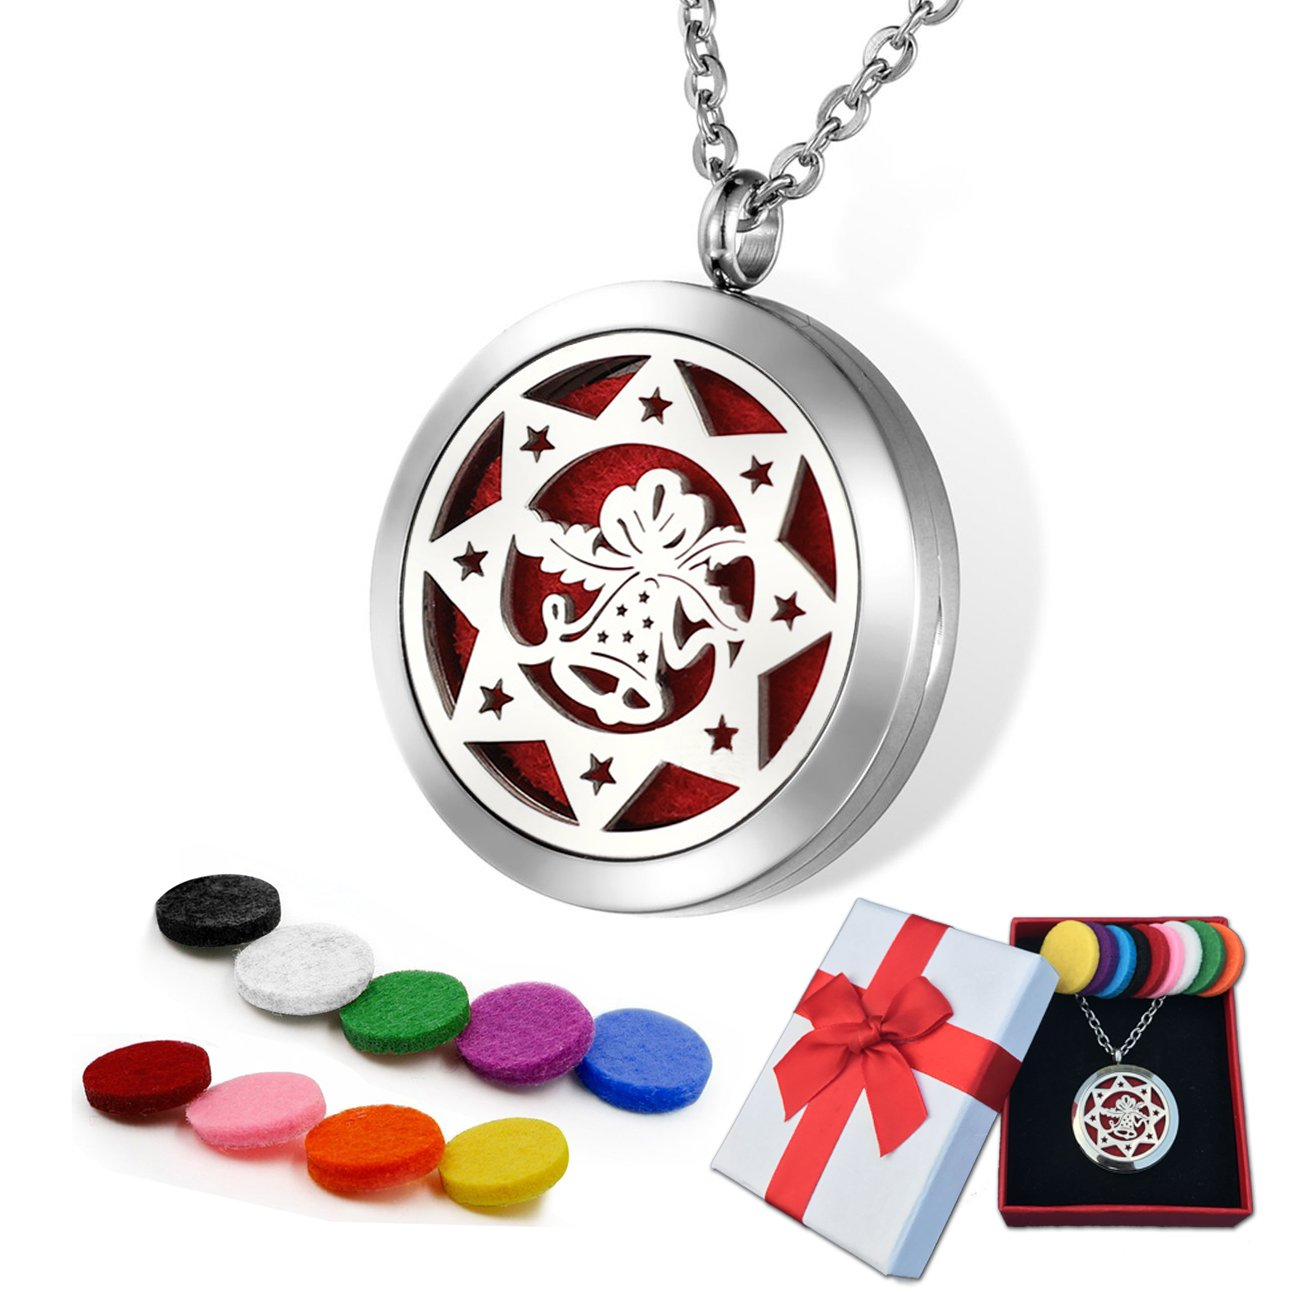 Jewelry Essential oil locket Aromatherapy Diffuser Necklace with 9 Refill Pads Holiday jewelry for women (Christmas Bells)